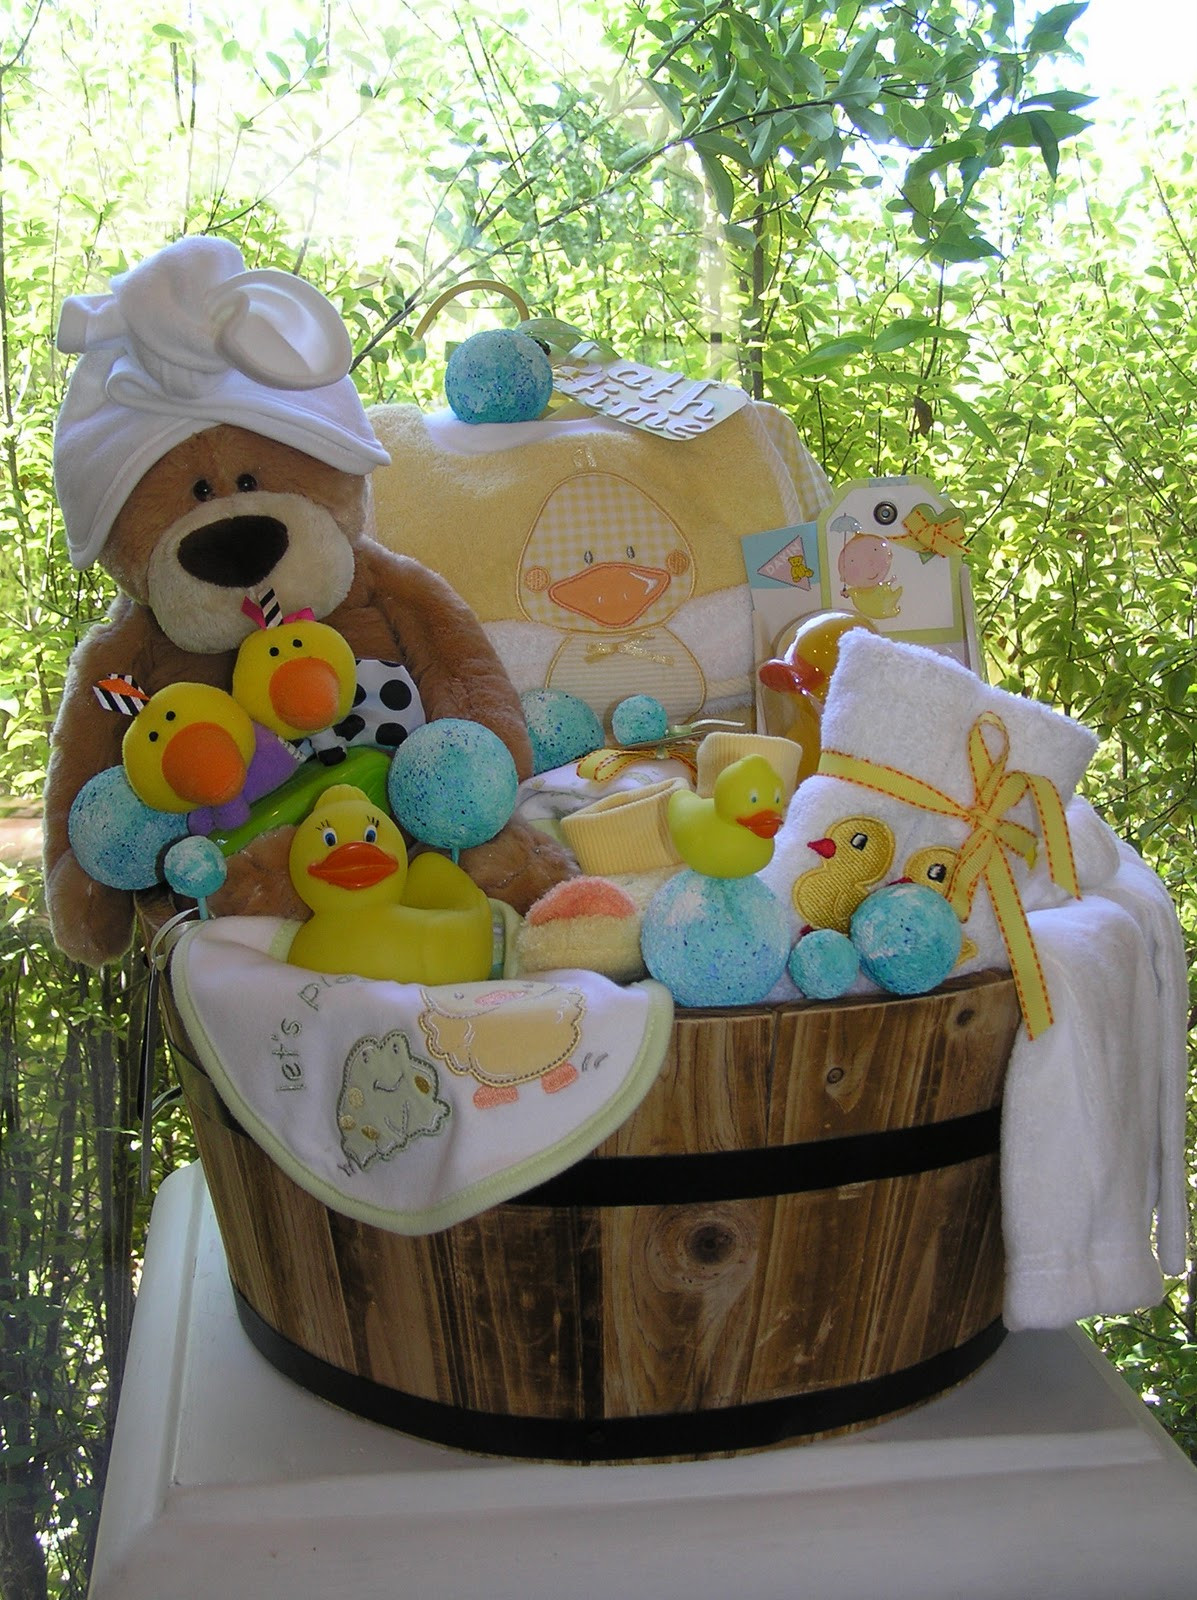 Awesome Baby Gift Ideas  White Horse Relics Unique Themed Baby Gift Baskets